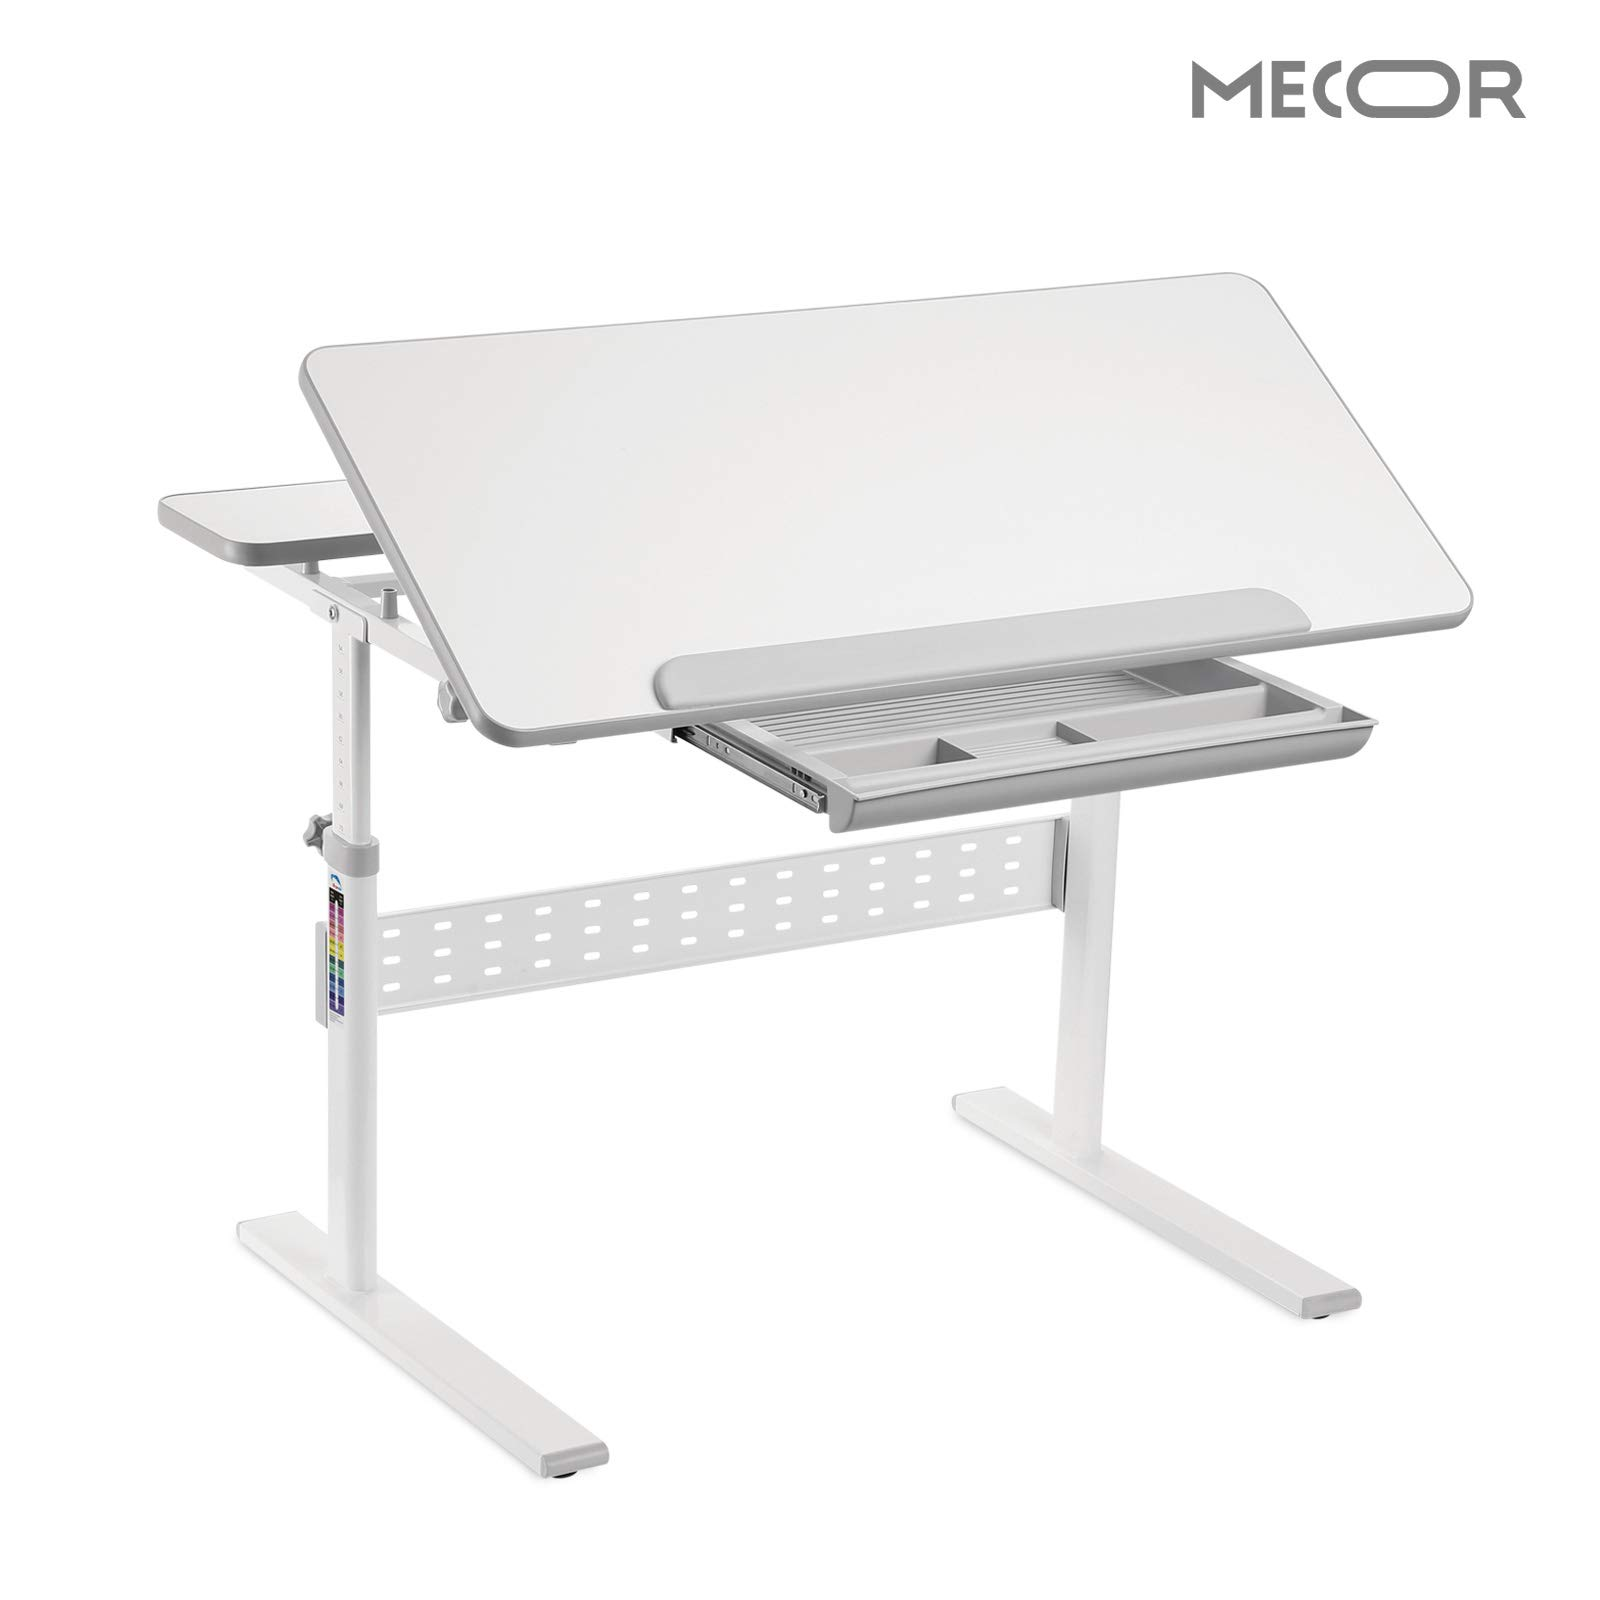 Mecor Kids School Desk,Student School Work Station Height Adjustable,Children Sturdy Table Large Inclined Tabletop w/Sliding Drawer Storage Grey by Mecor